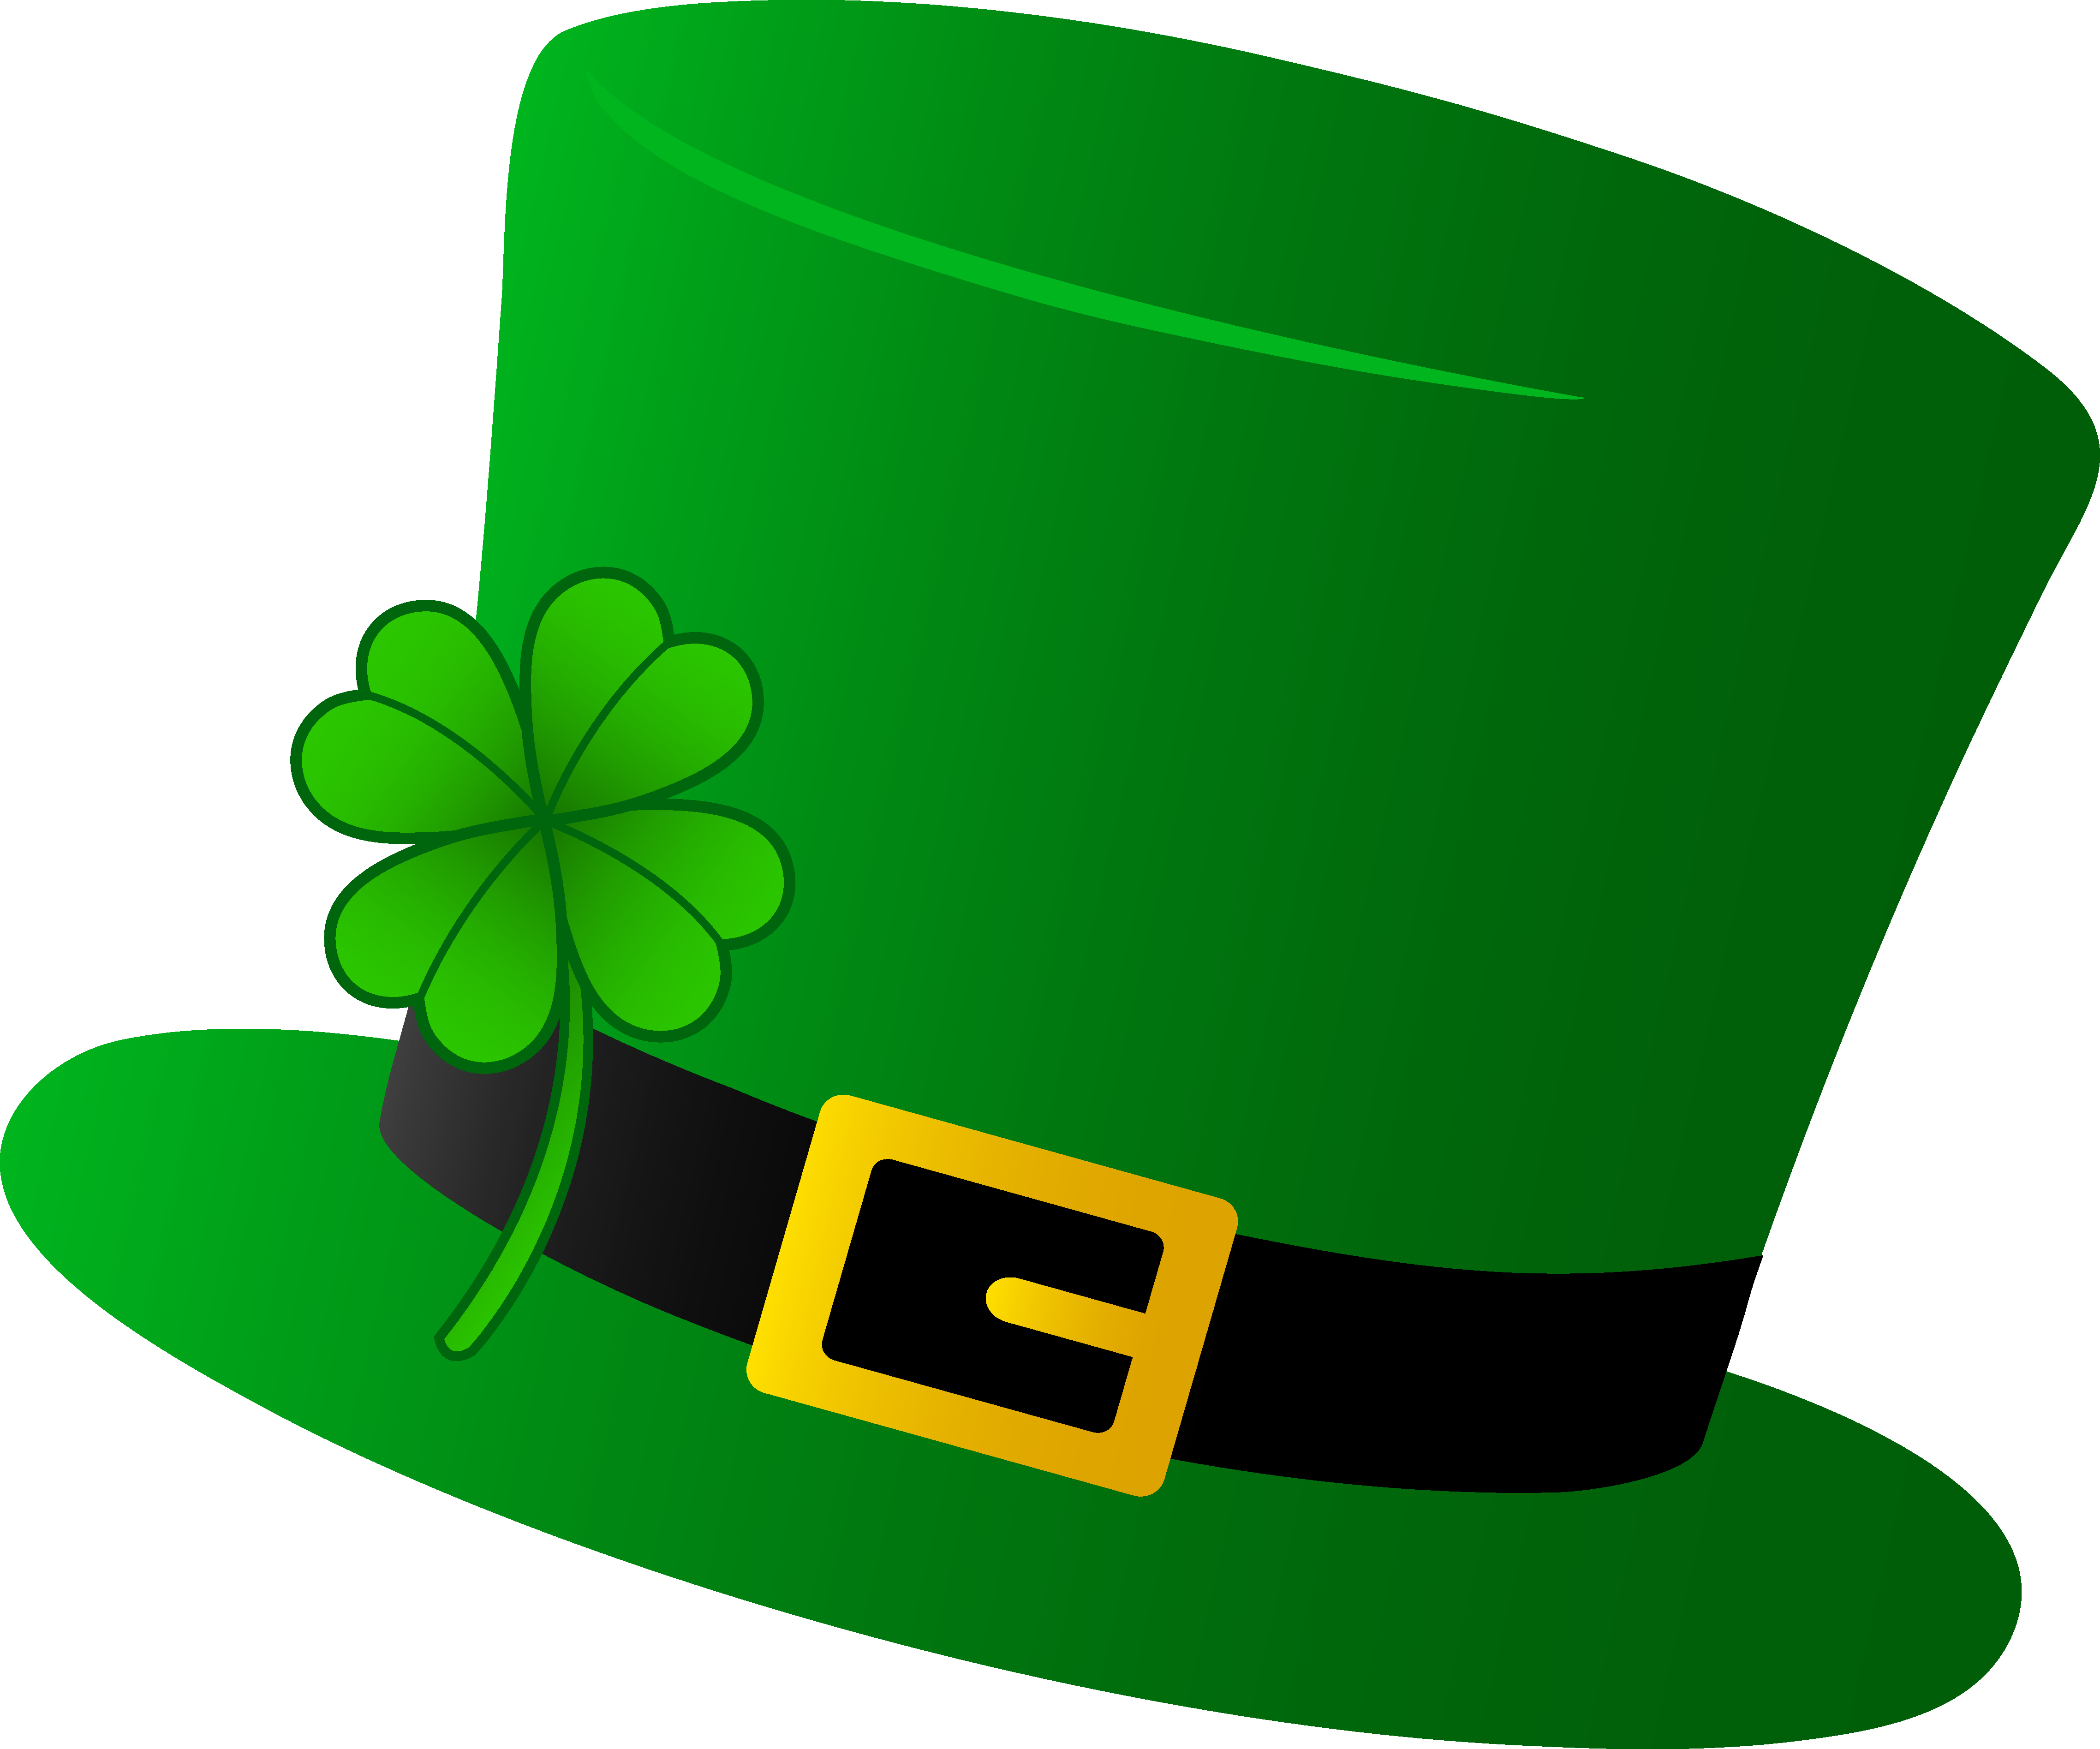 Picture Of Shamrock - Clipart Library-Picture Of Shamrock - Clipart library-15